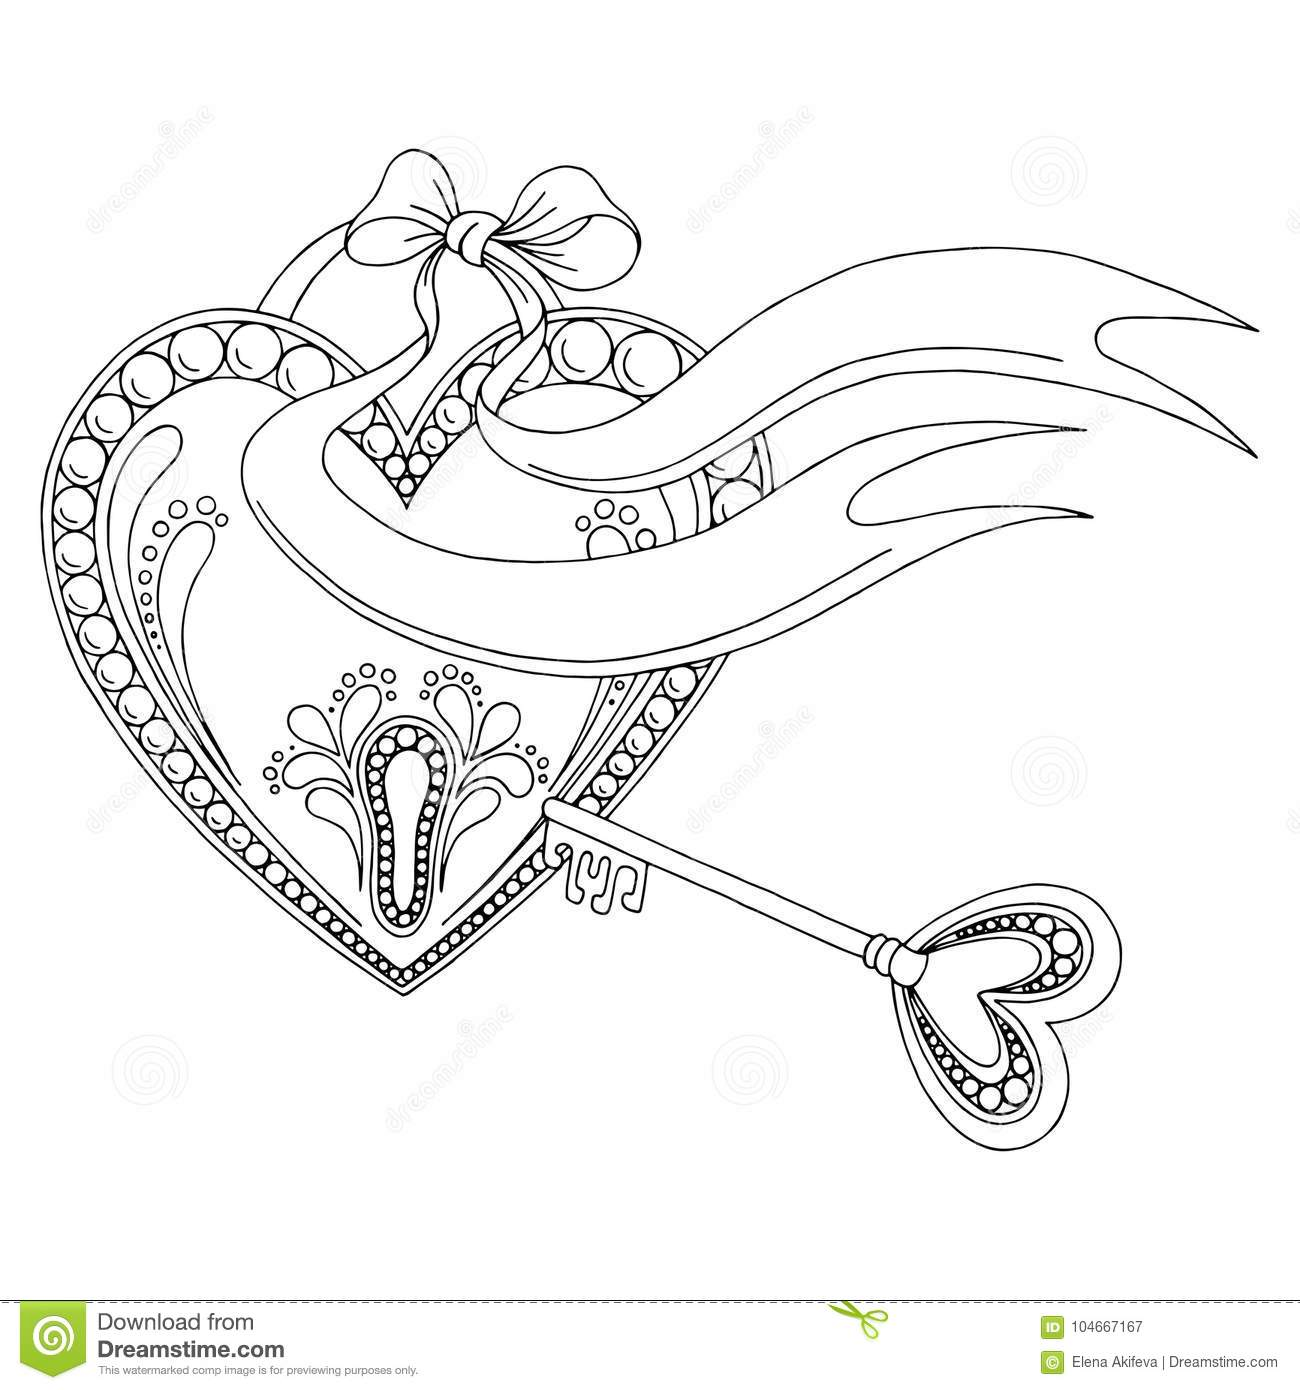 Pattern Heart Lock Key Doodle Black White Graphic Sketch